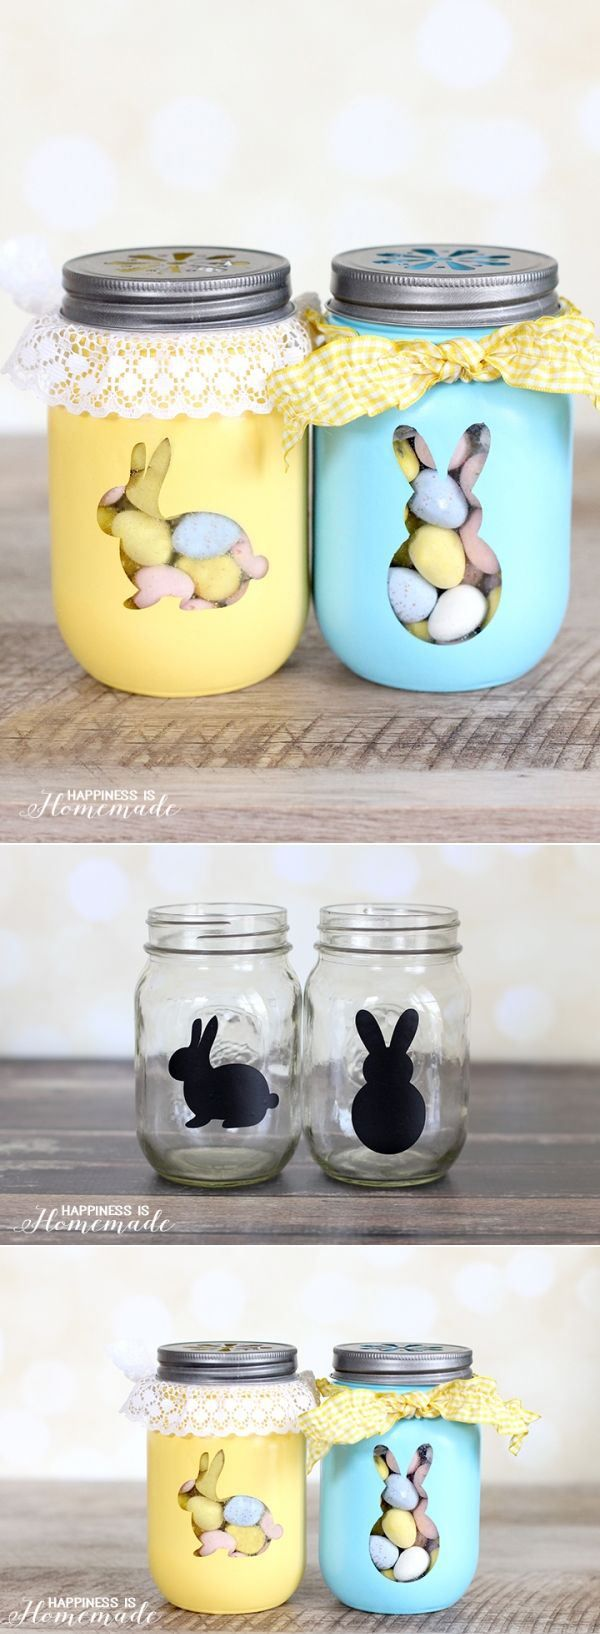 Best 25 easter crafts ideas on pinterest diy easter decorations best 25 easter crafts ideas on pinterest diy easter decorations easter and easter projects negle Gallery